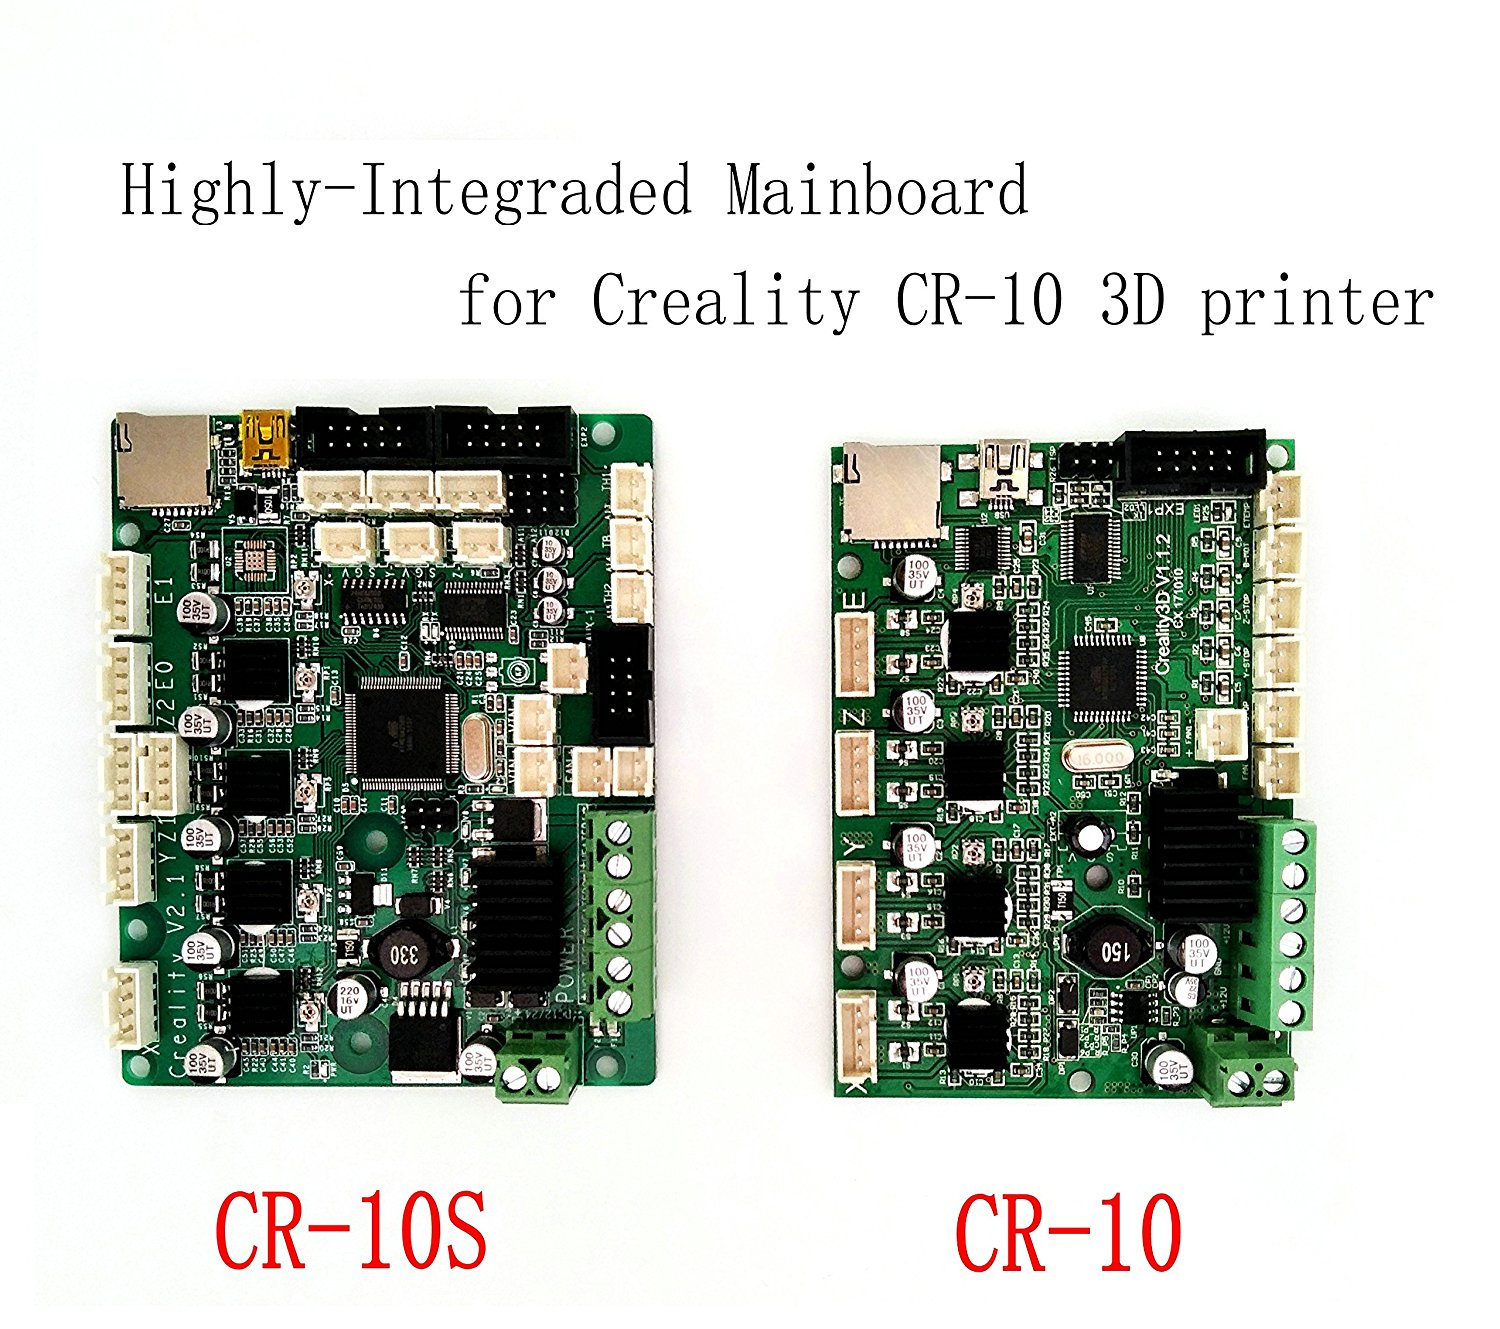 Creality CR-10S Mainboard Upgraded Replacement Controller Board Latest V2.1 Version Motherboard for Creality CR-10S S4 S5 3D Printer with Filament Monitoring Alarm